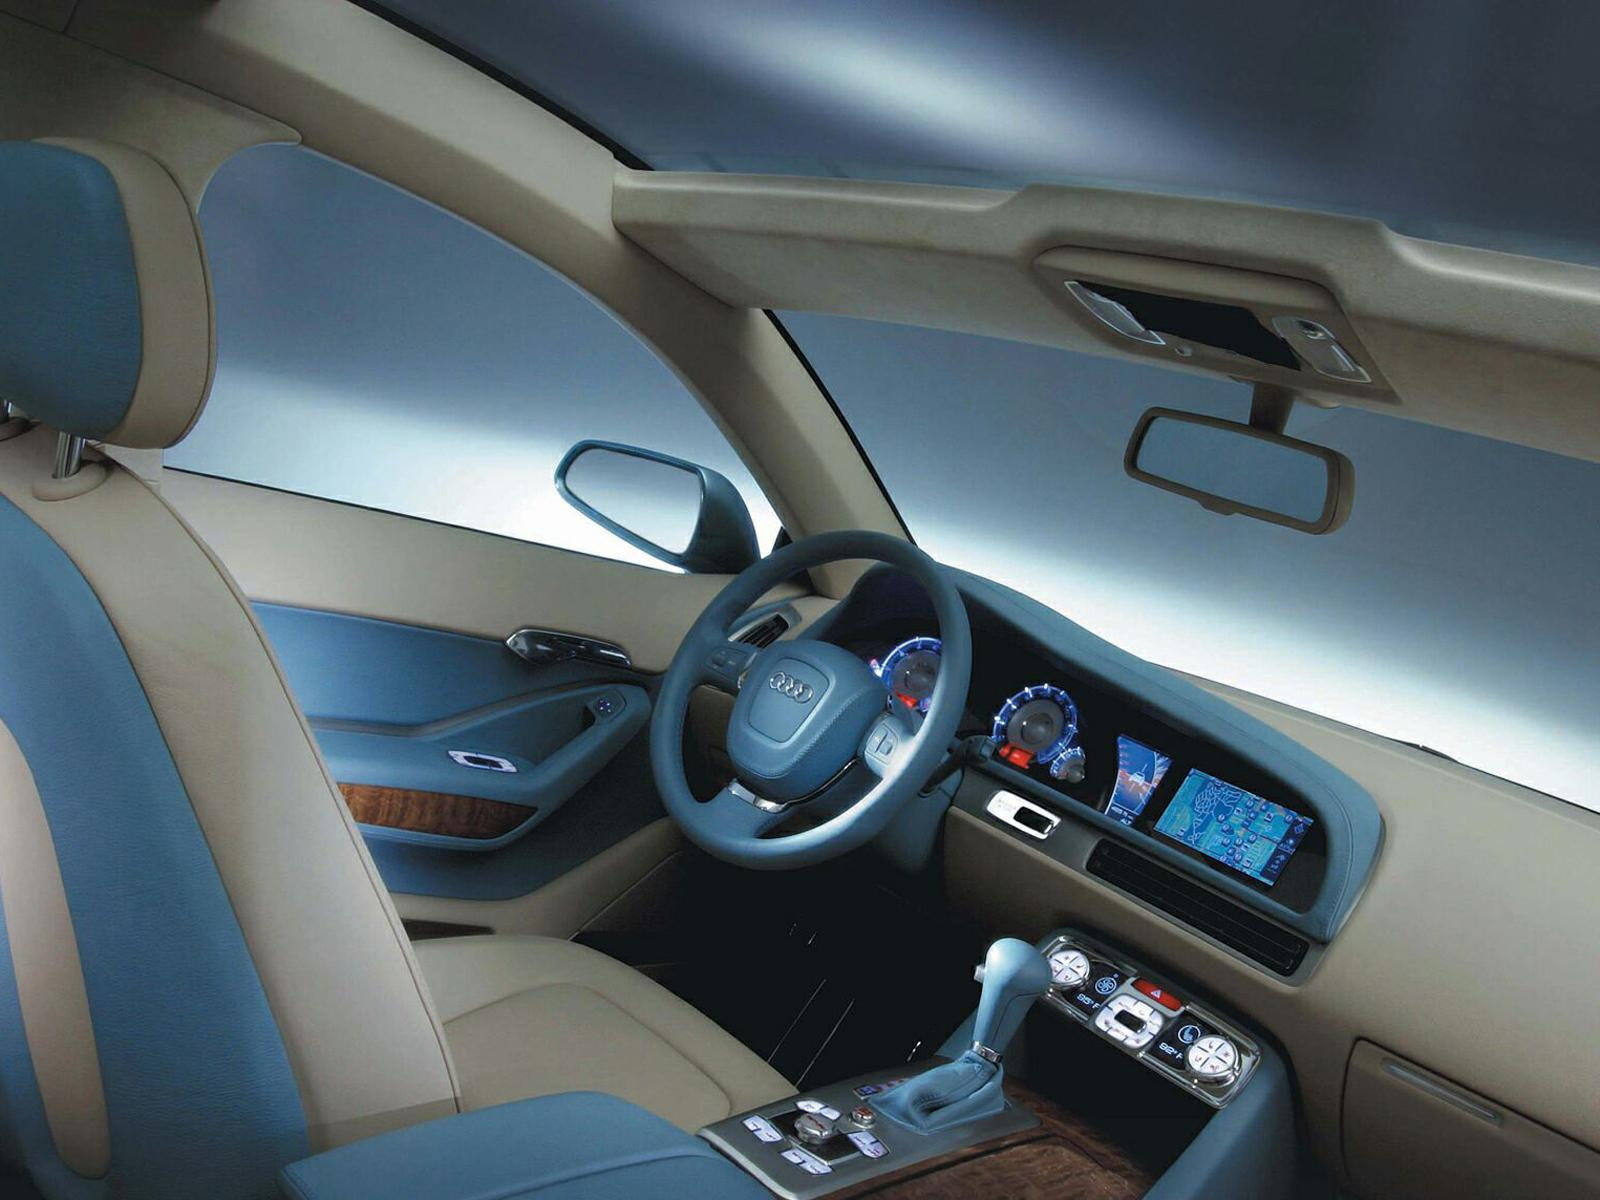 Interior Design Ideas: Car Interior Design